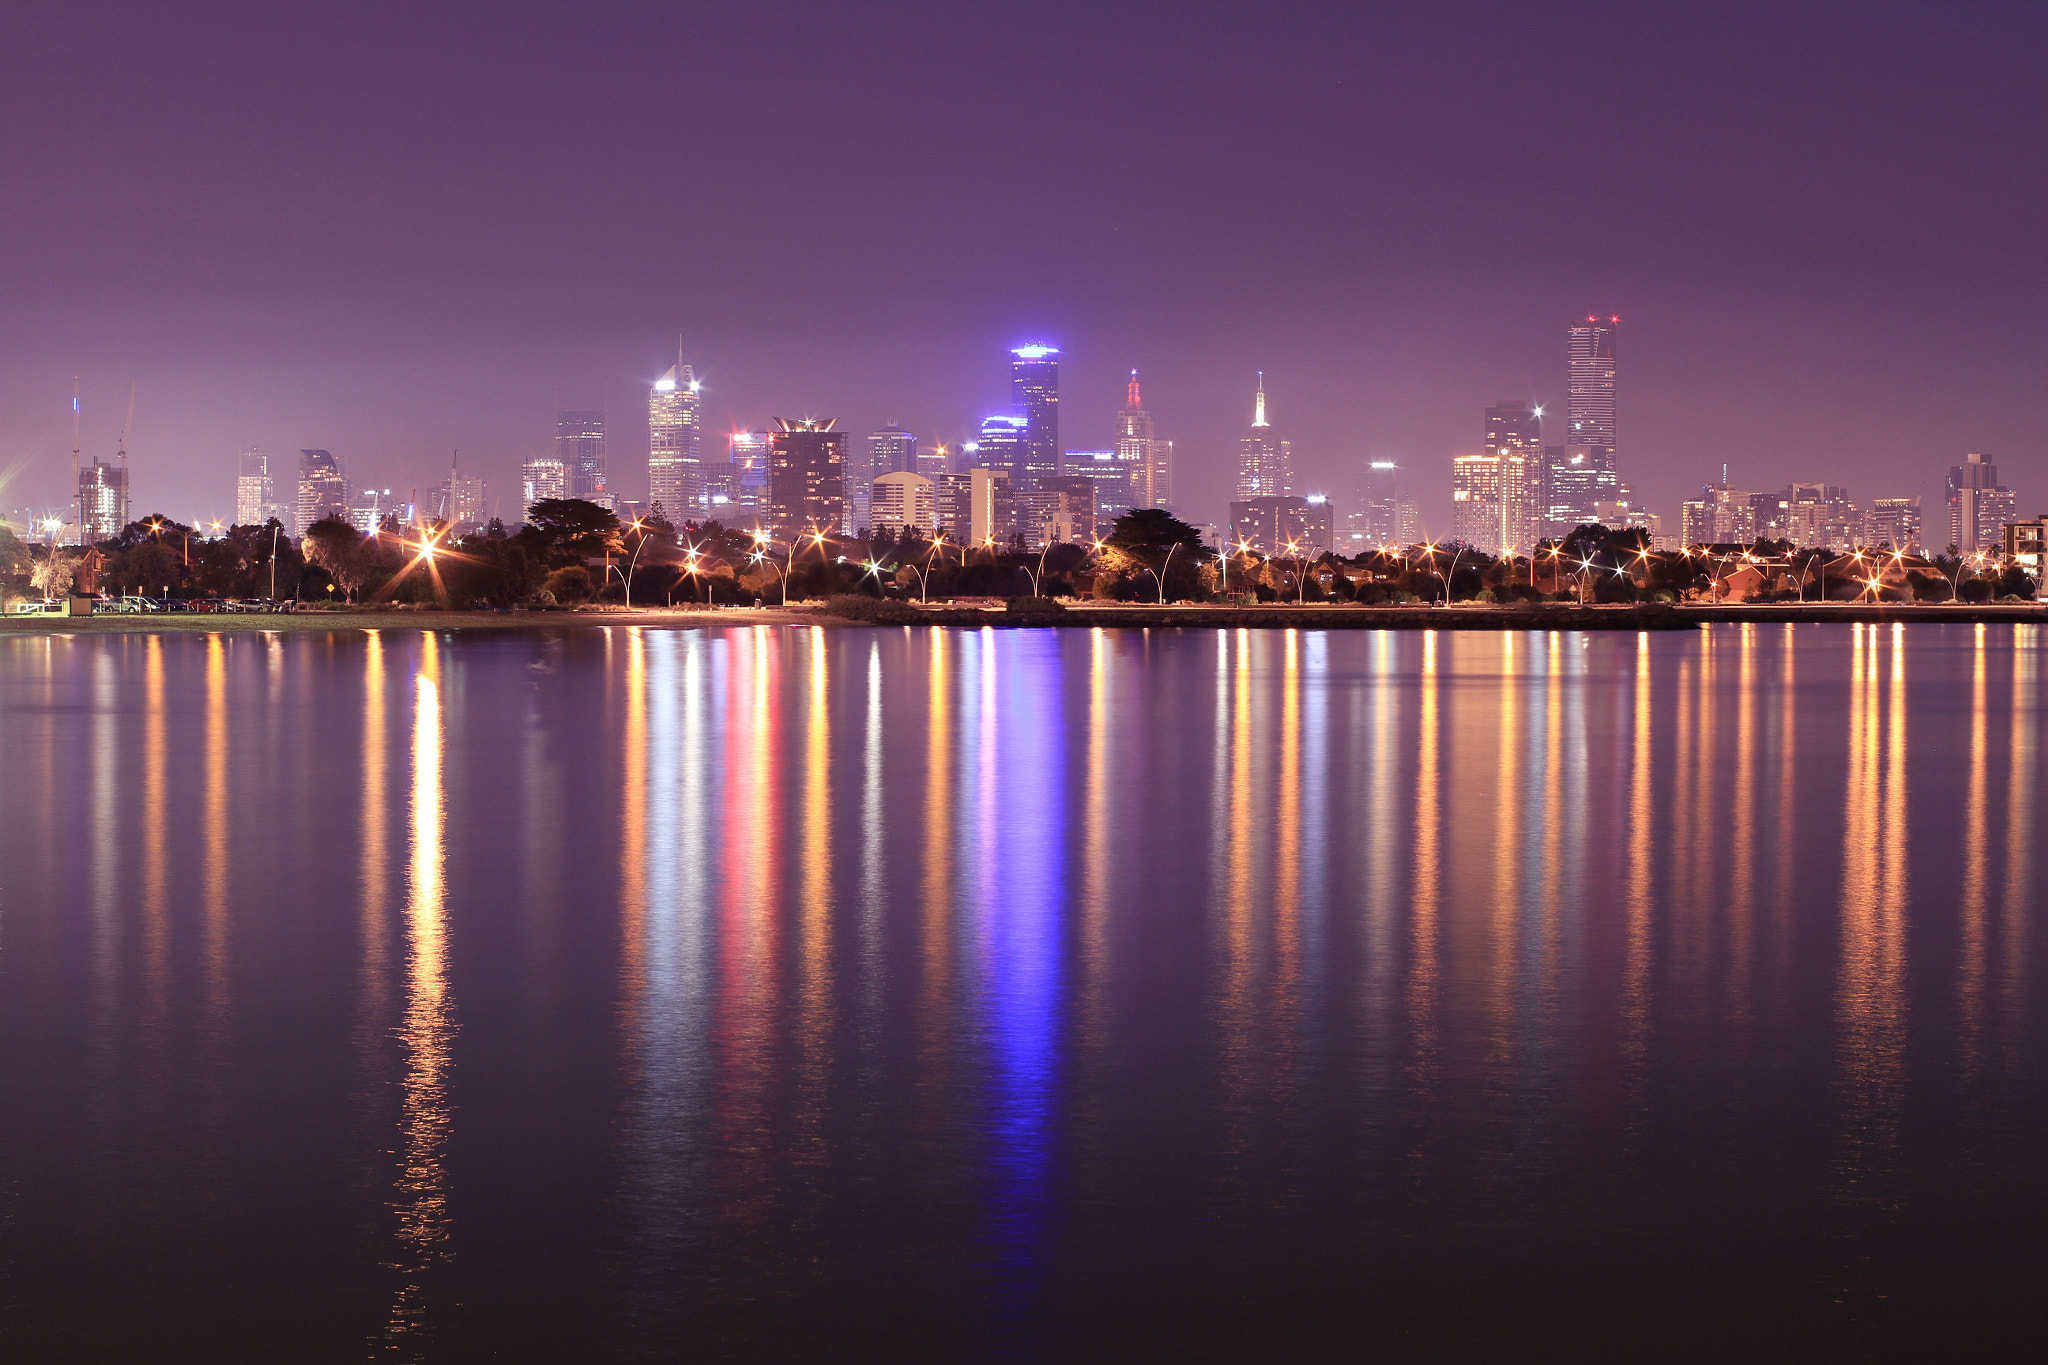 Photograph Misty Port Melbourne by H.P. Ng on 500px